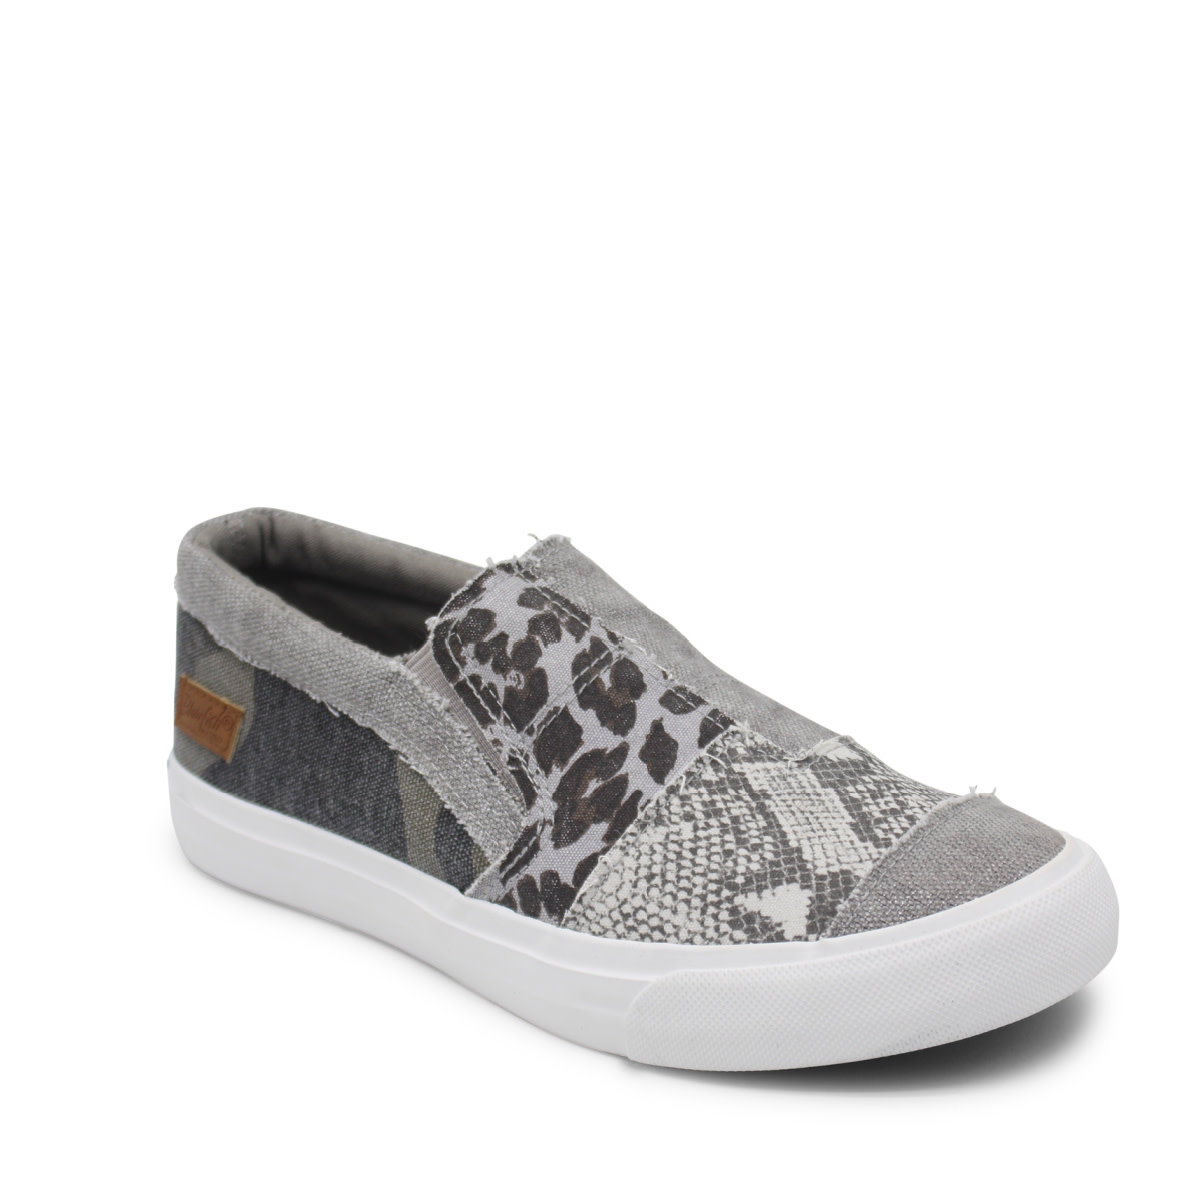 Blowfish Malibu Blowfish Malibu Maddox Slip-on Smoke Snake